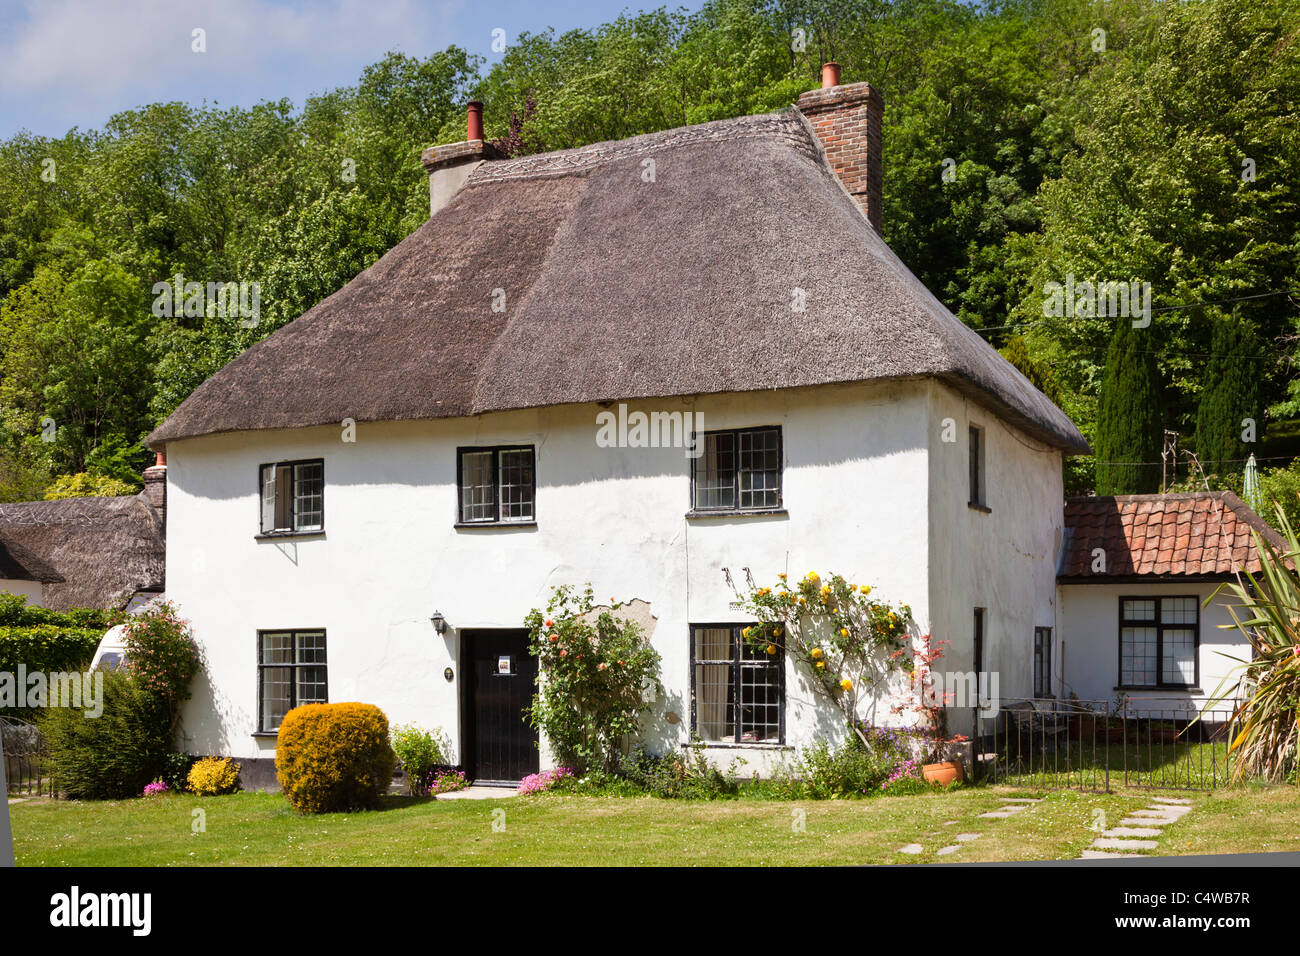 Country Cottage, Milton Abbas, Dorset, England, UK - Stock Image